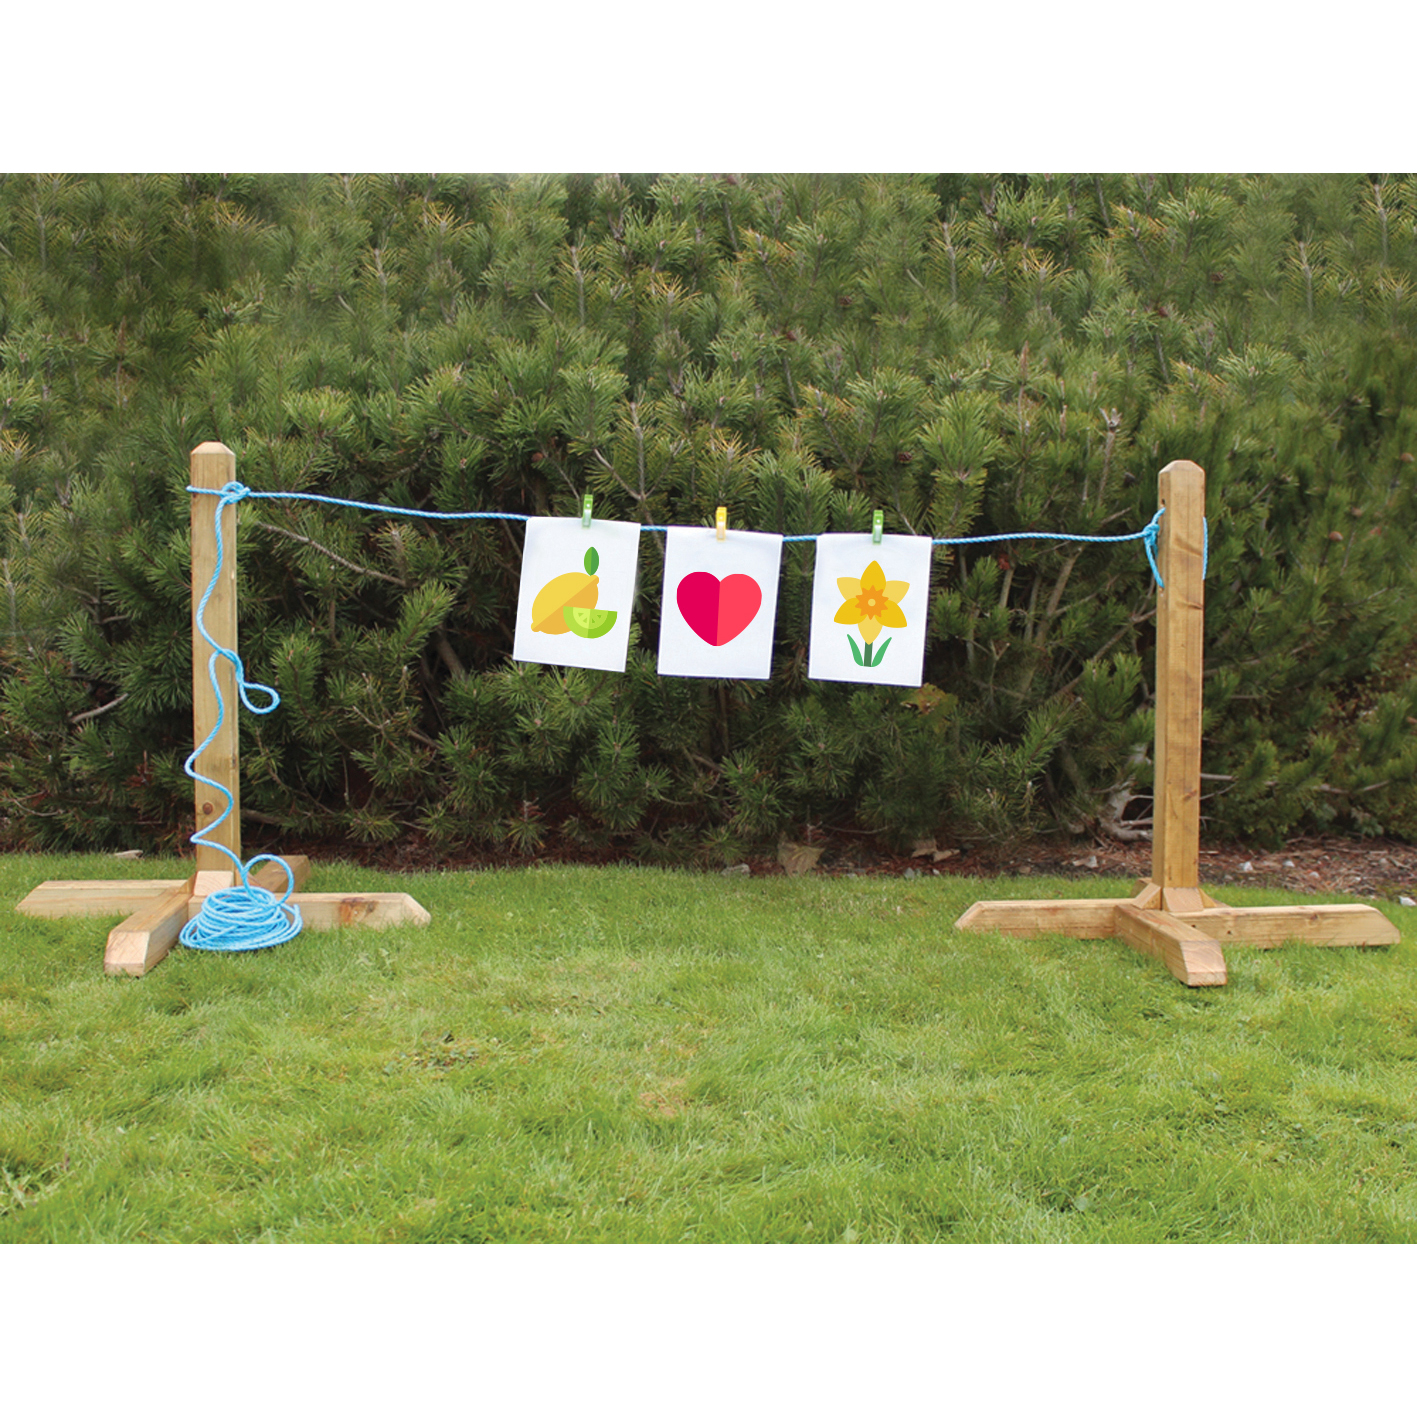 ED667 Outdoor Free Standing Washing Line with February Seasonal Graphics